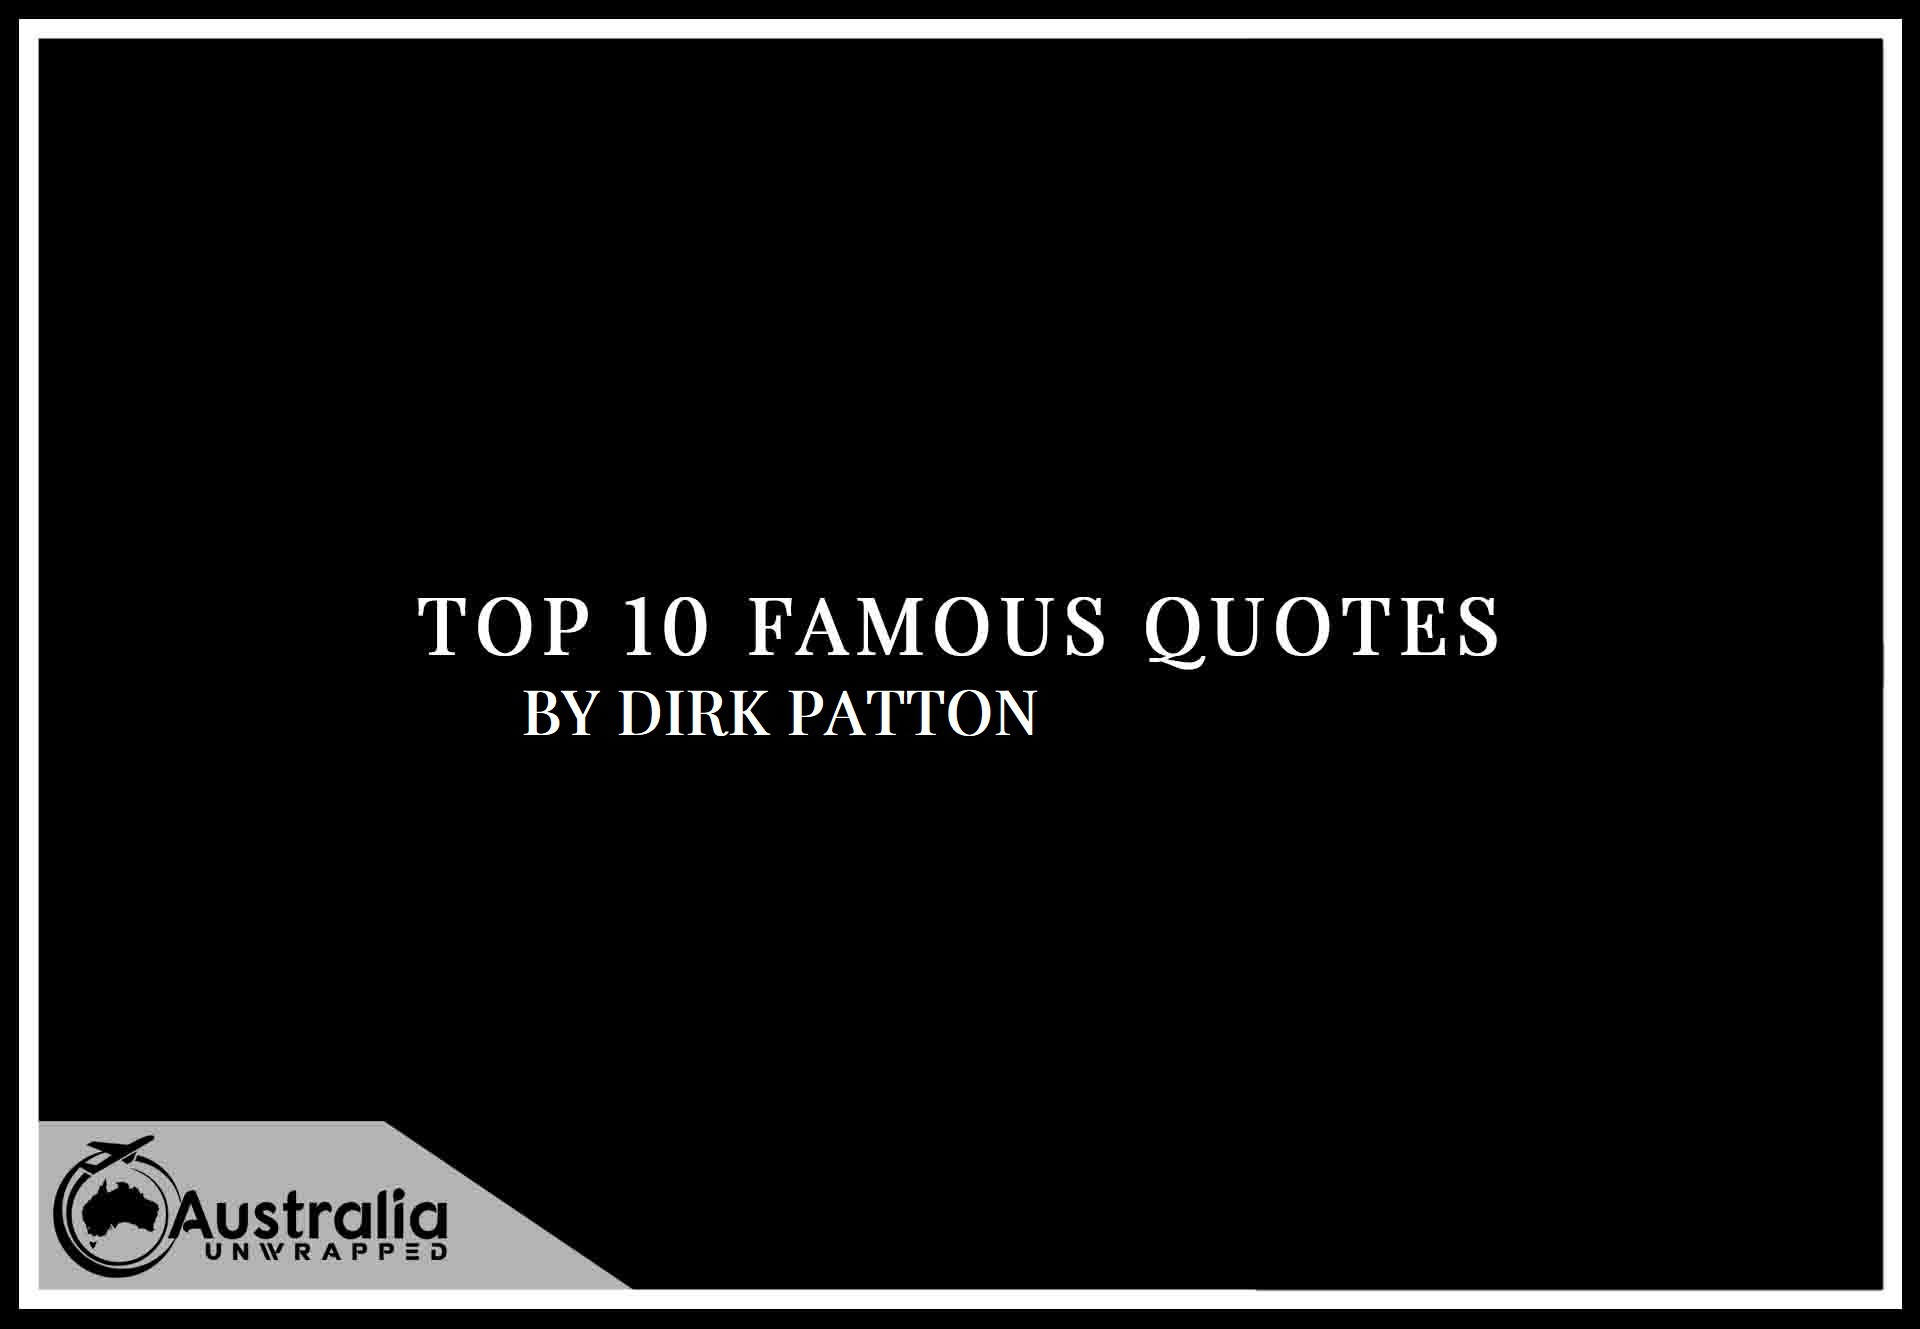 Top 10 Famous Quotes by Author Dirk Patton